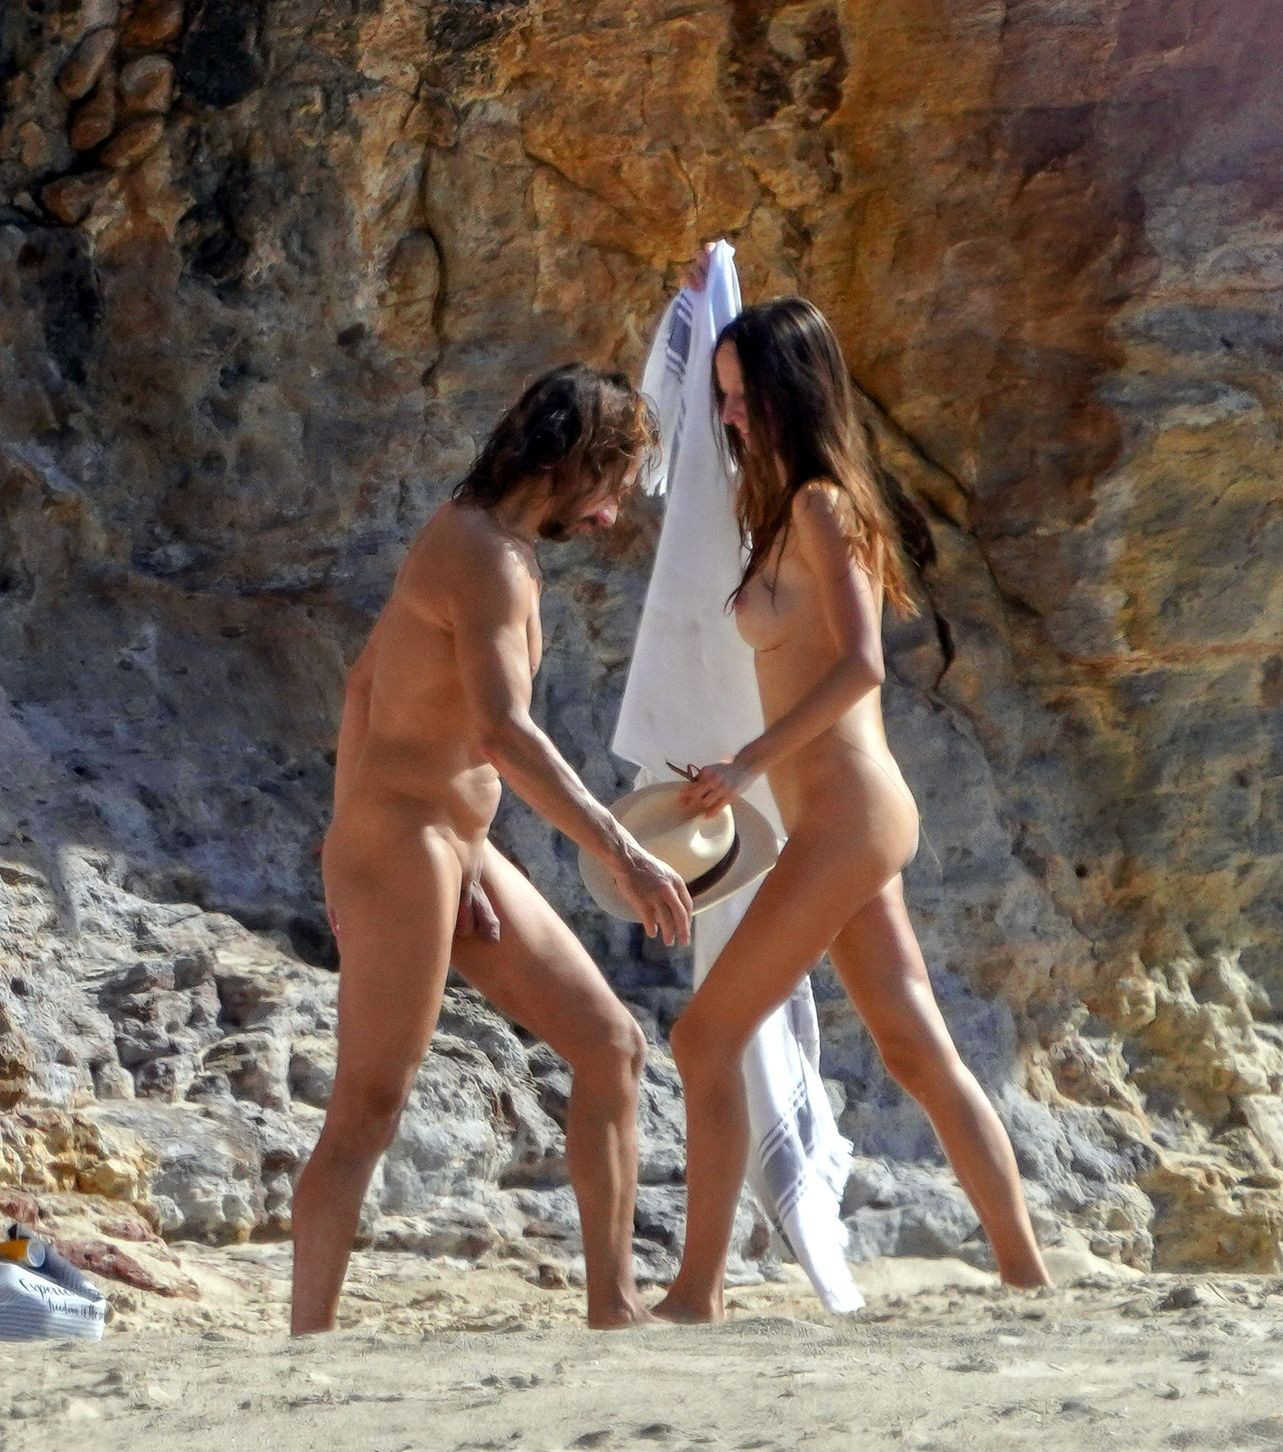 bob sinlcar naked on the beach